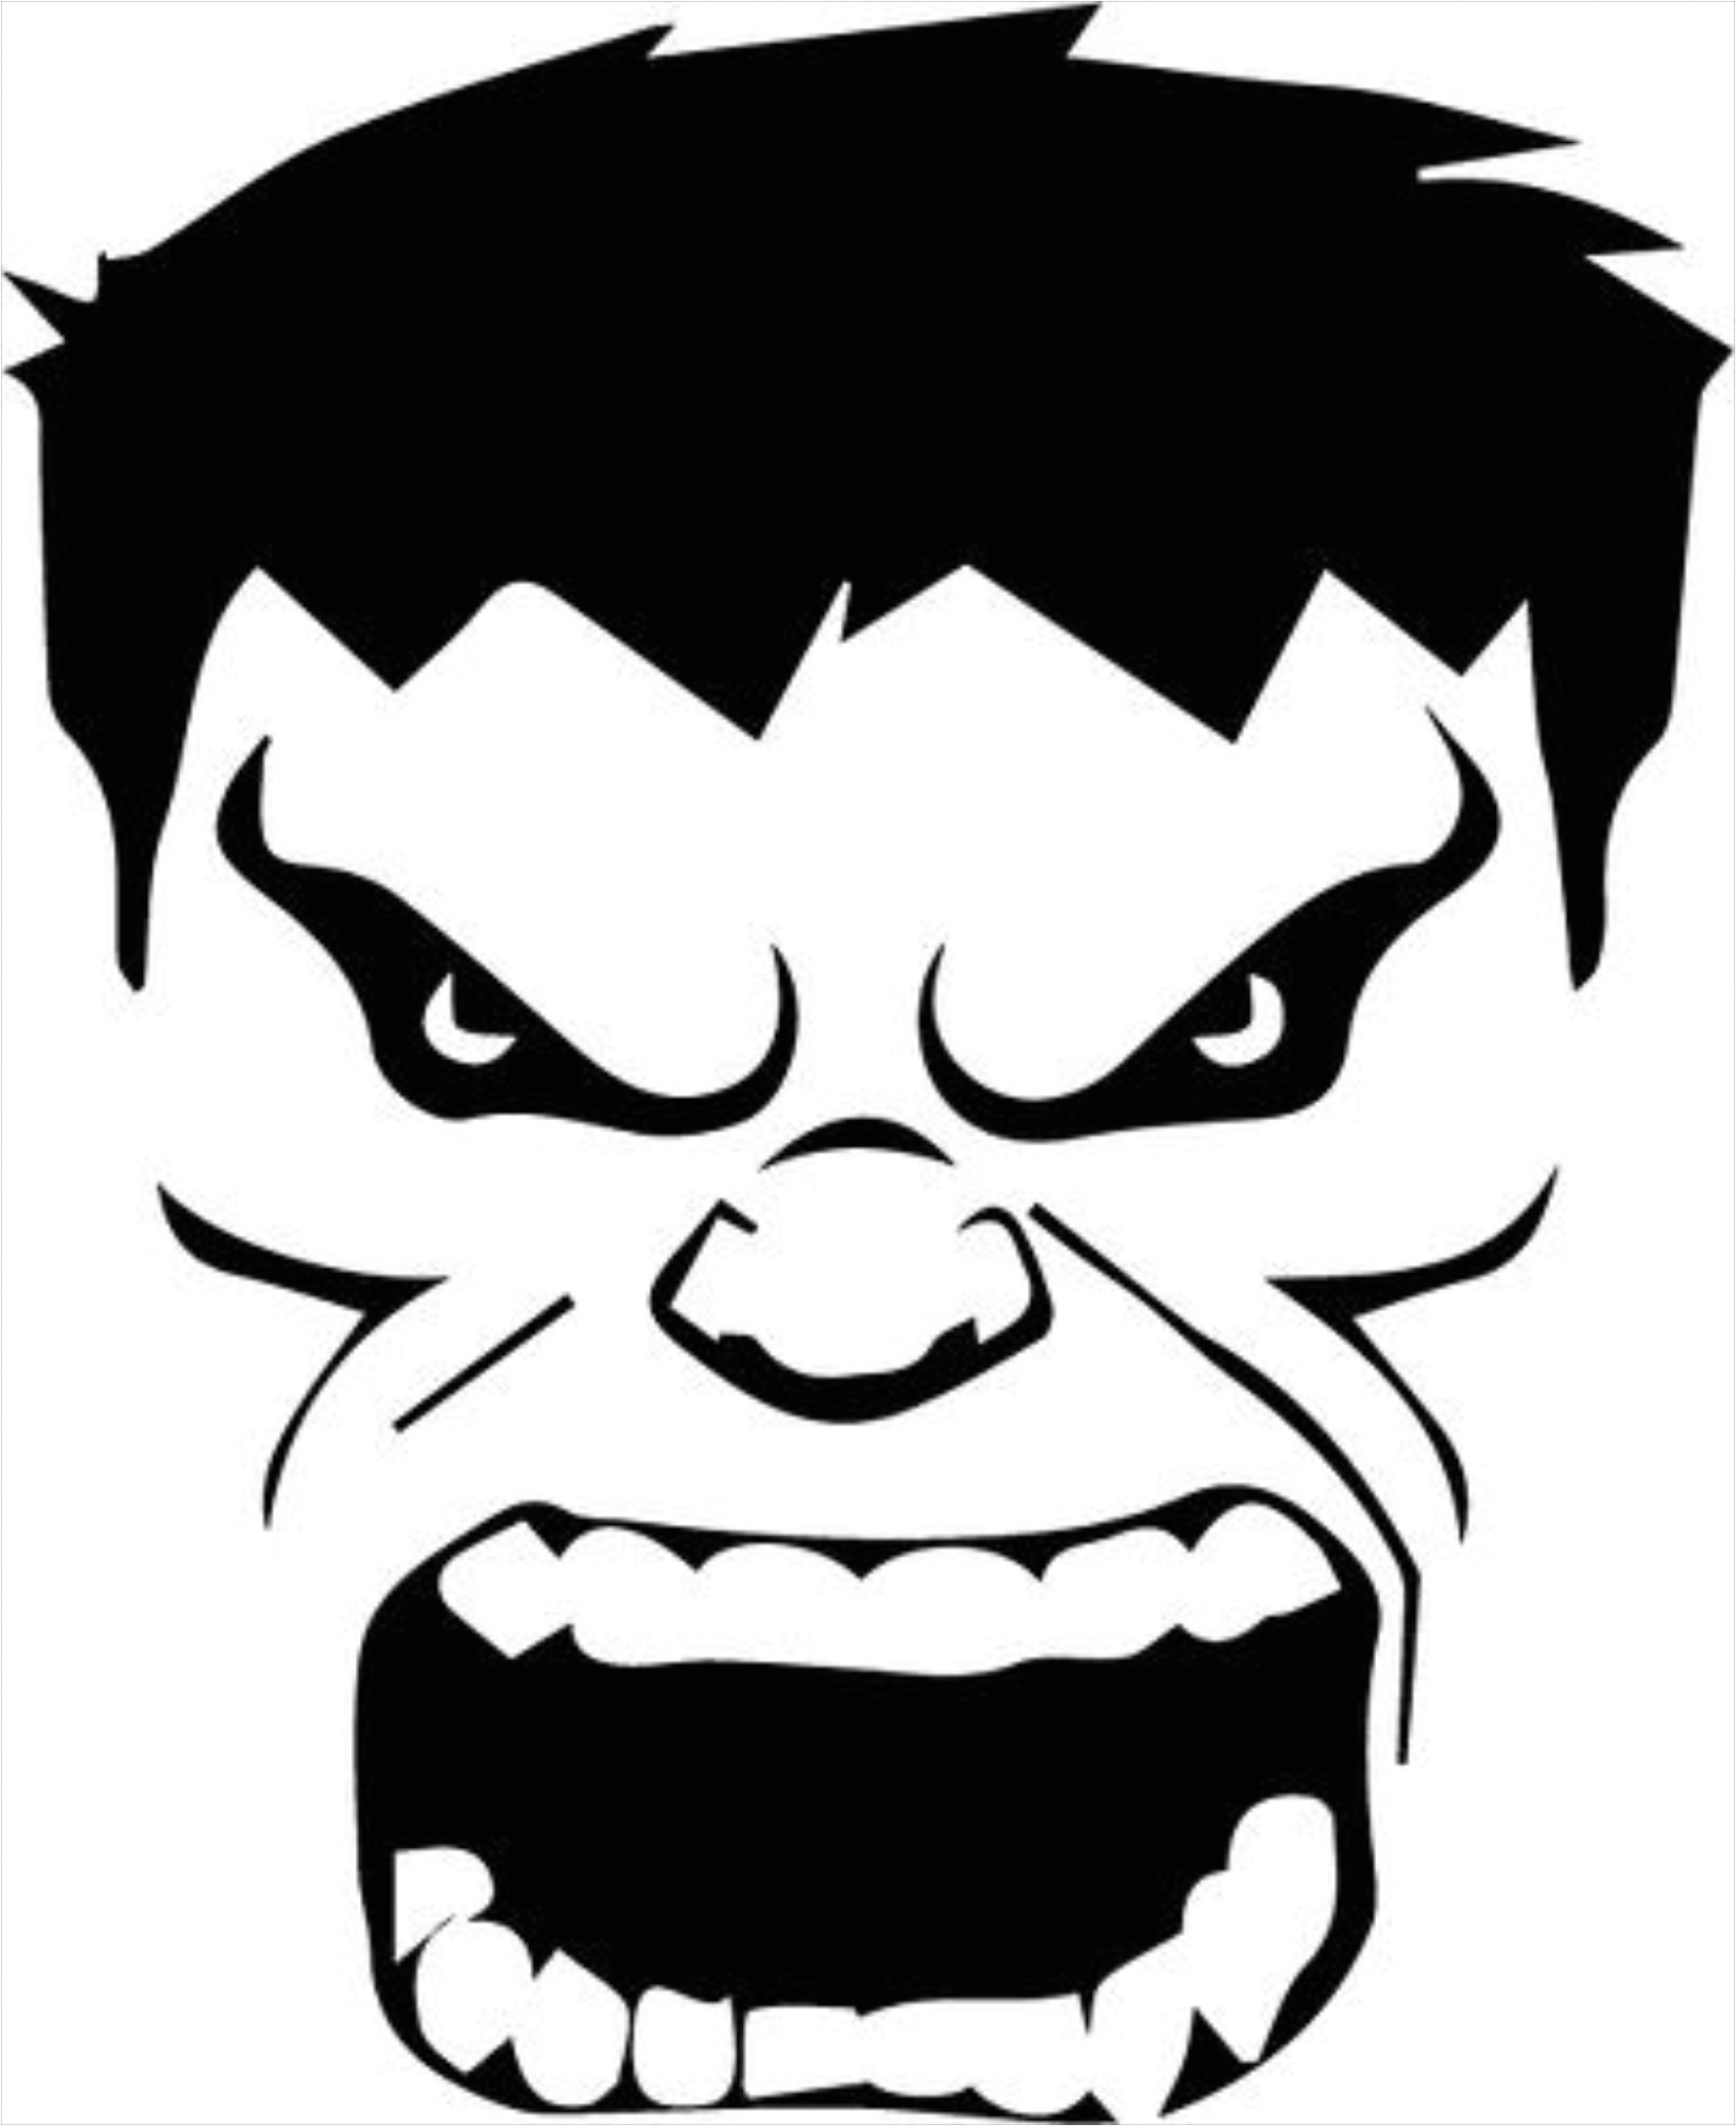 incredible hulk face template